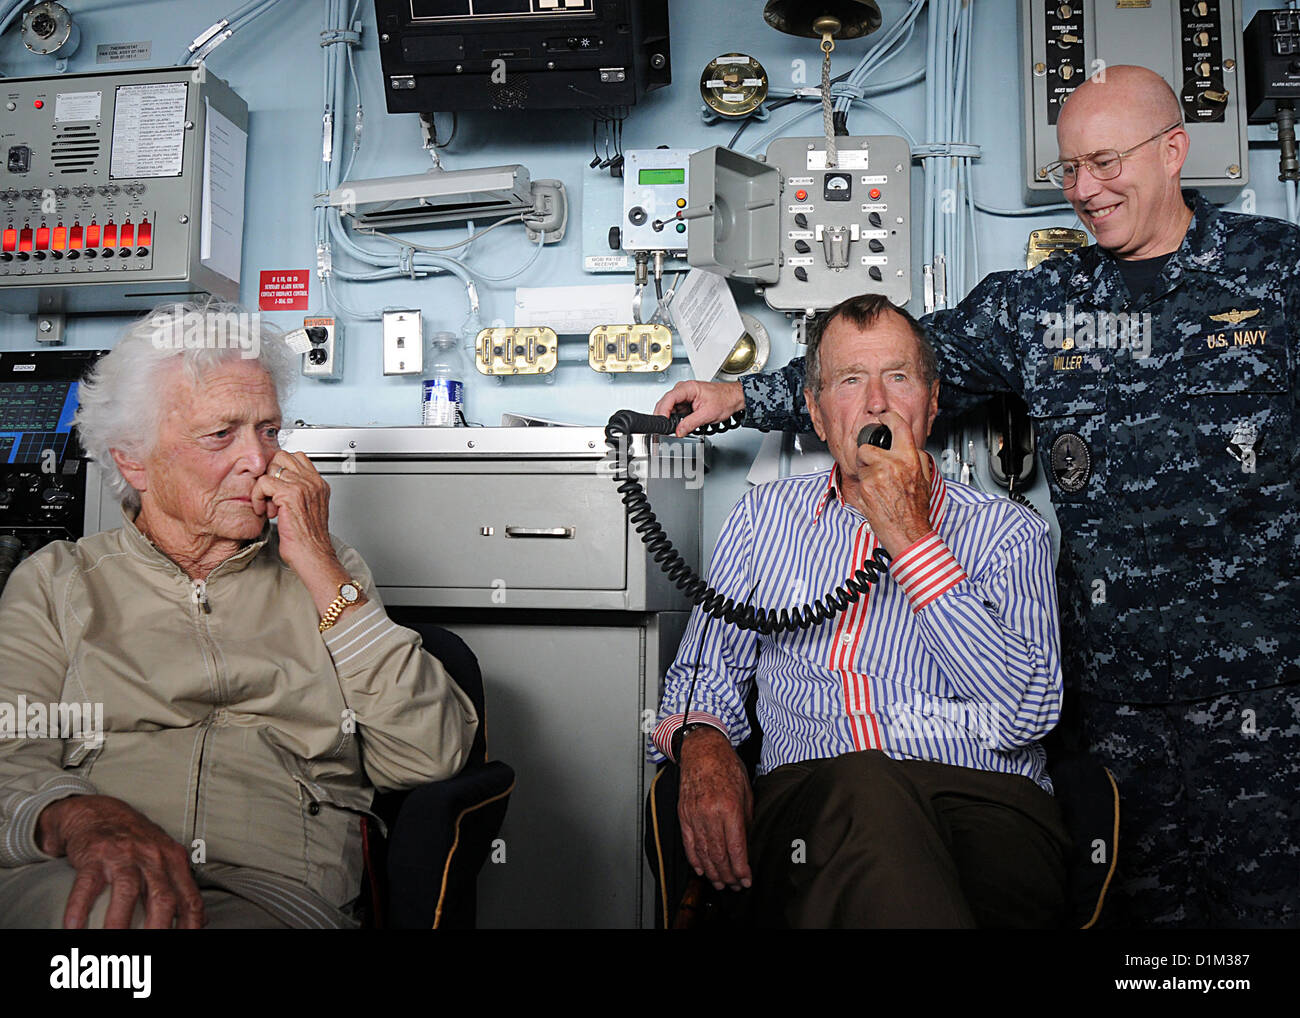 Former President George H. W. Bush, center, addresses U.S. Sailors using the public address system during a visit to the aircraft carrier USS George H. W. Bush (CVN 77) in the Atlantic Ocean Jan. 14, 2010. Accompanying Bush are wife Barbara Bush, left, an Stock Photo